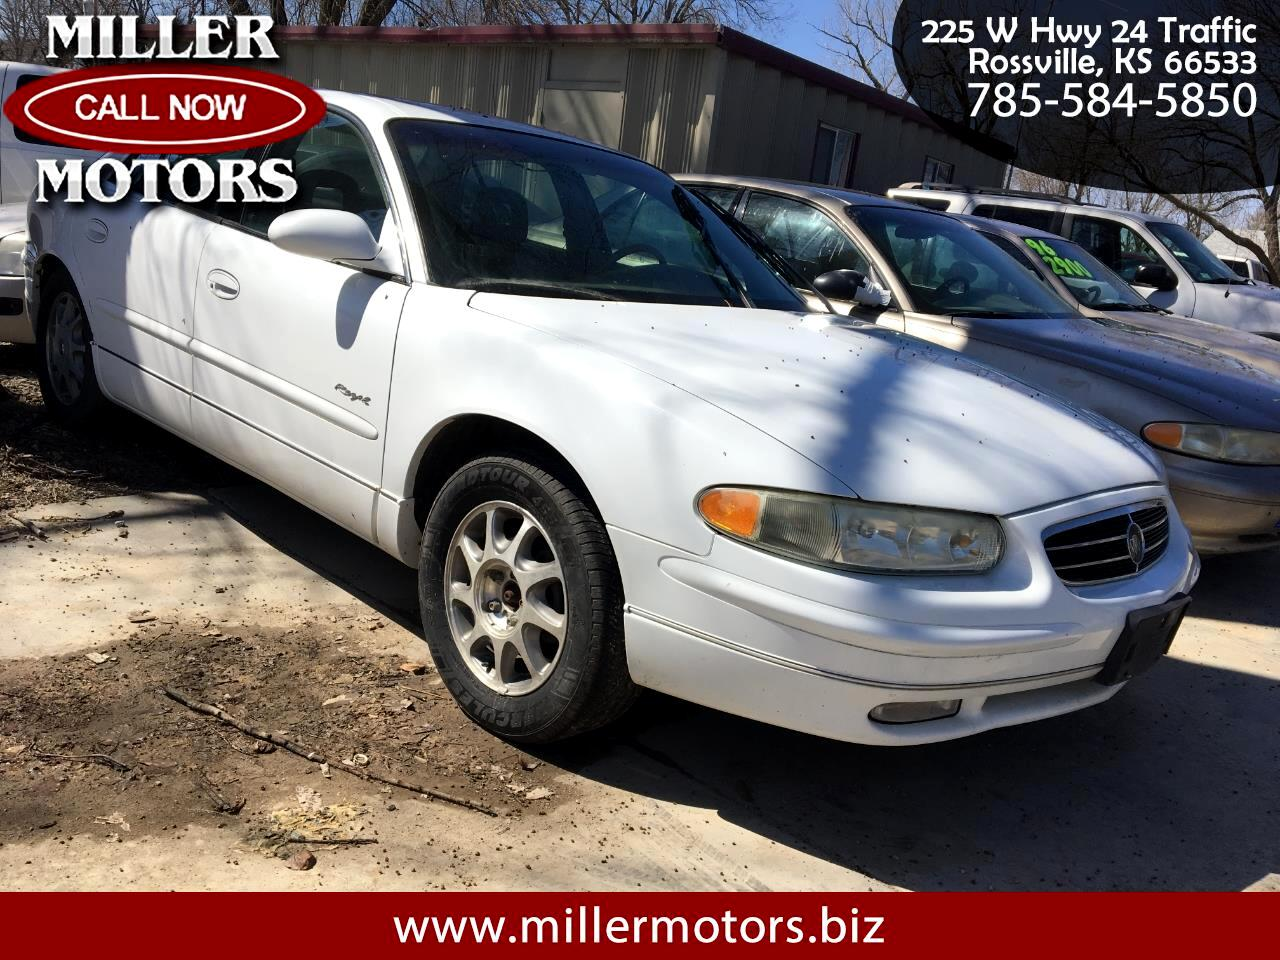 1998 Buick Regal 4dr Sdn LS